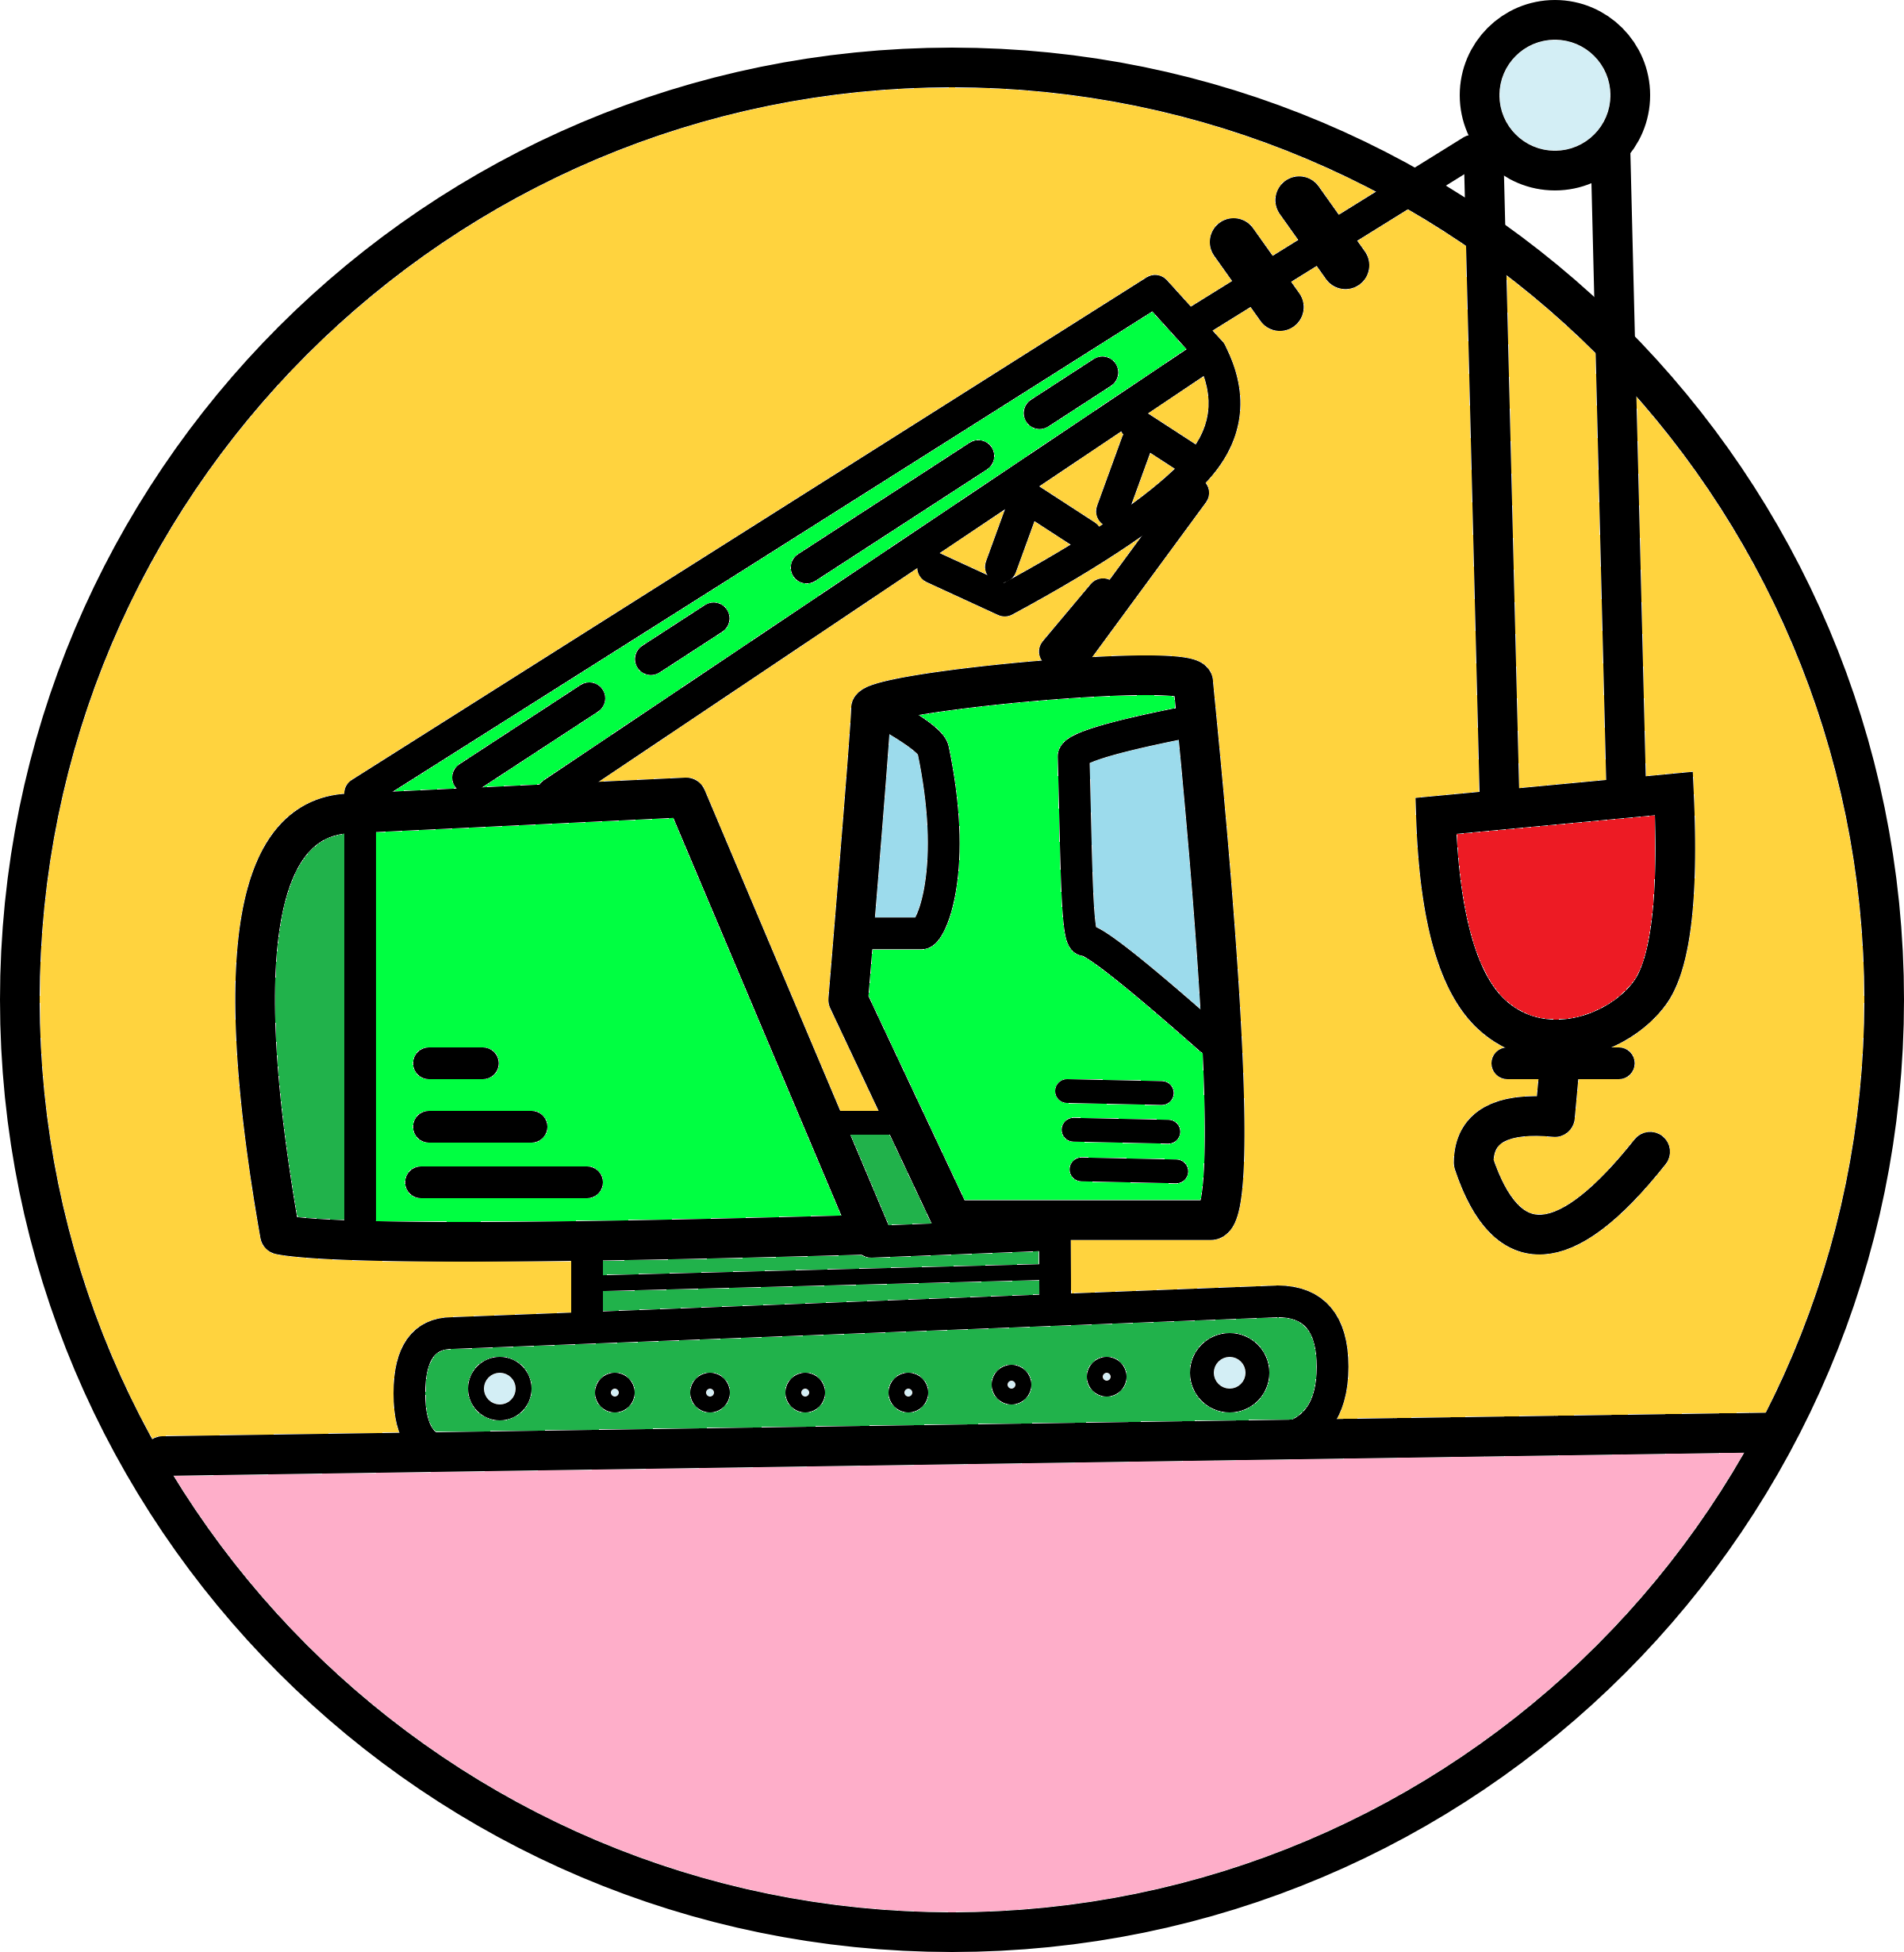 The crane symbolises how to build your product or service